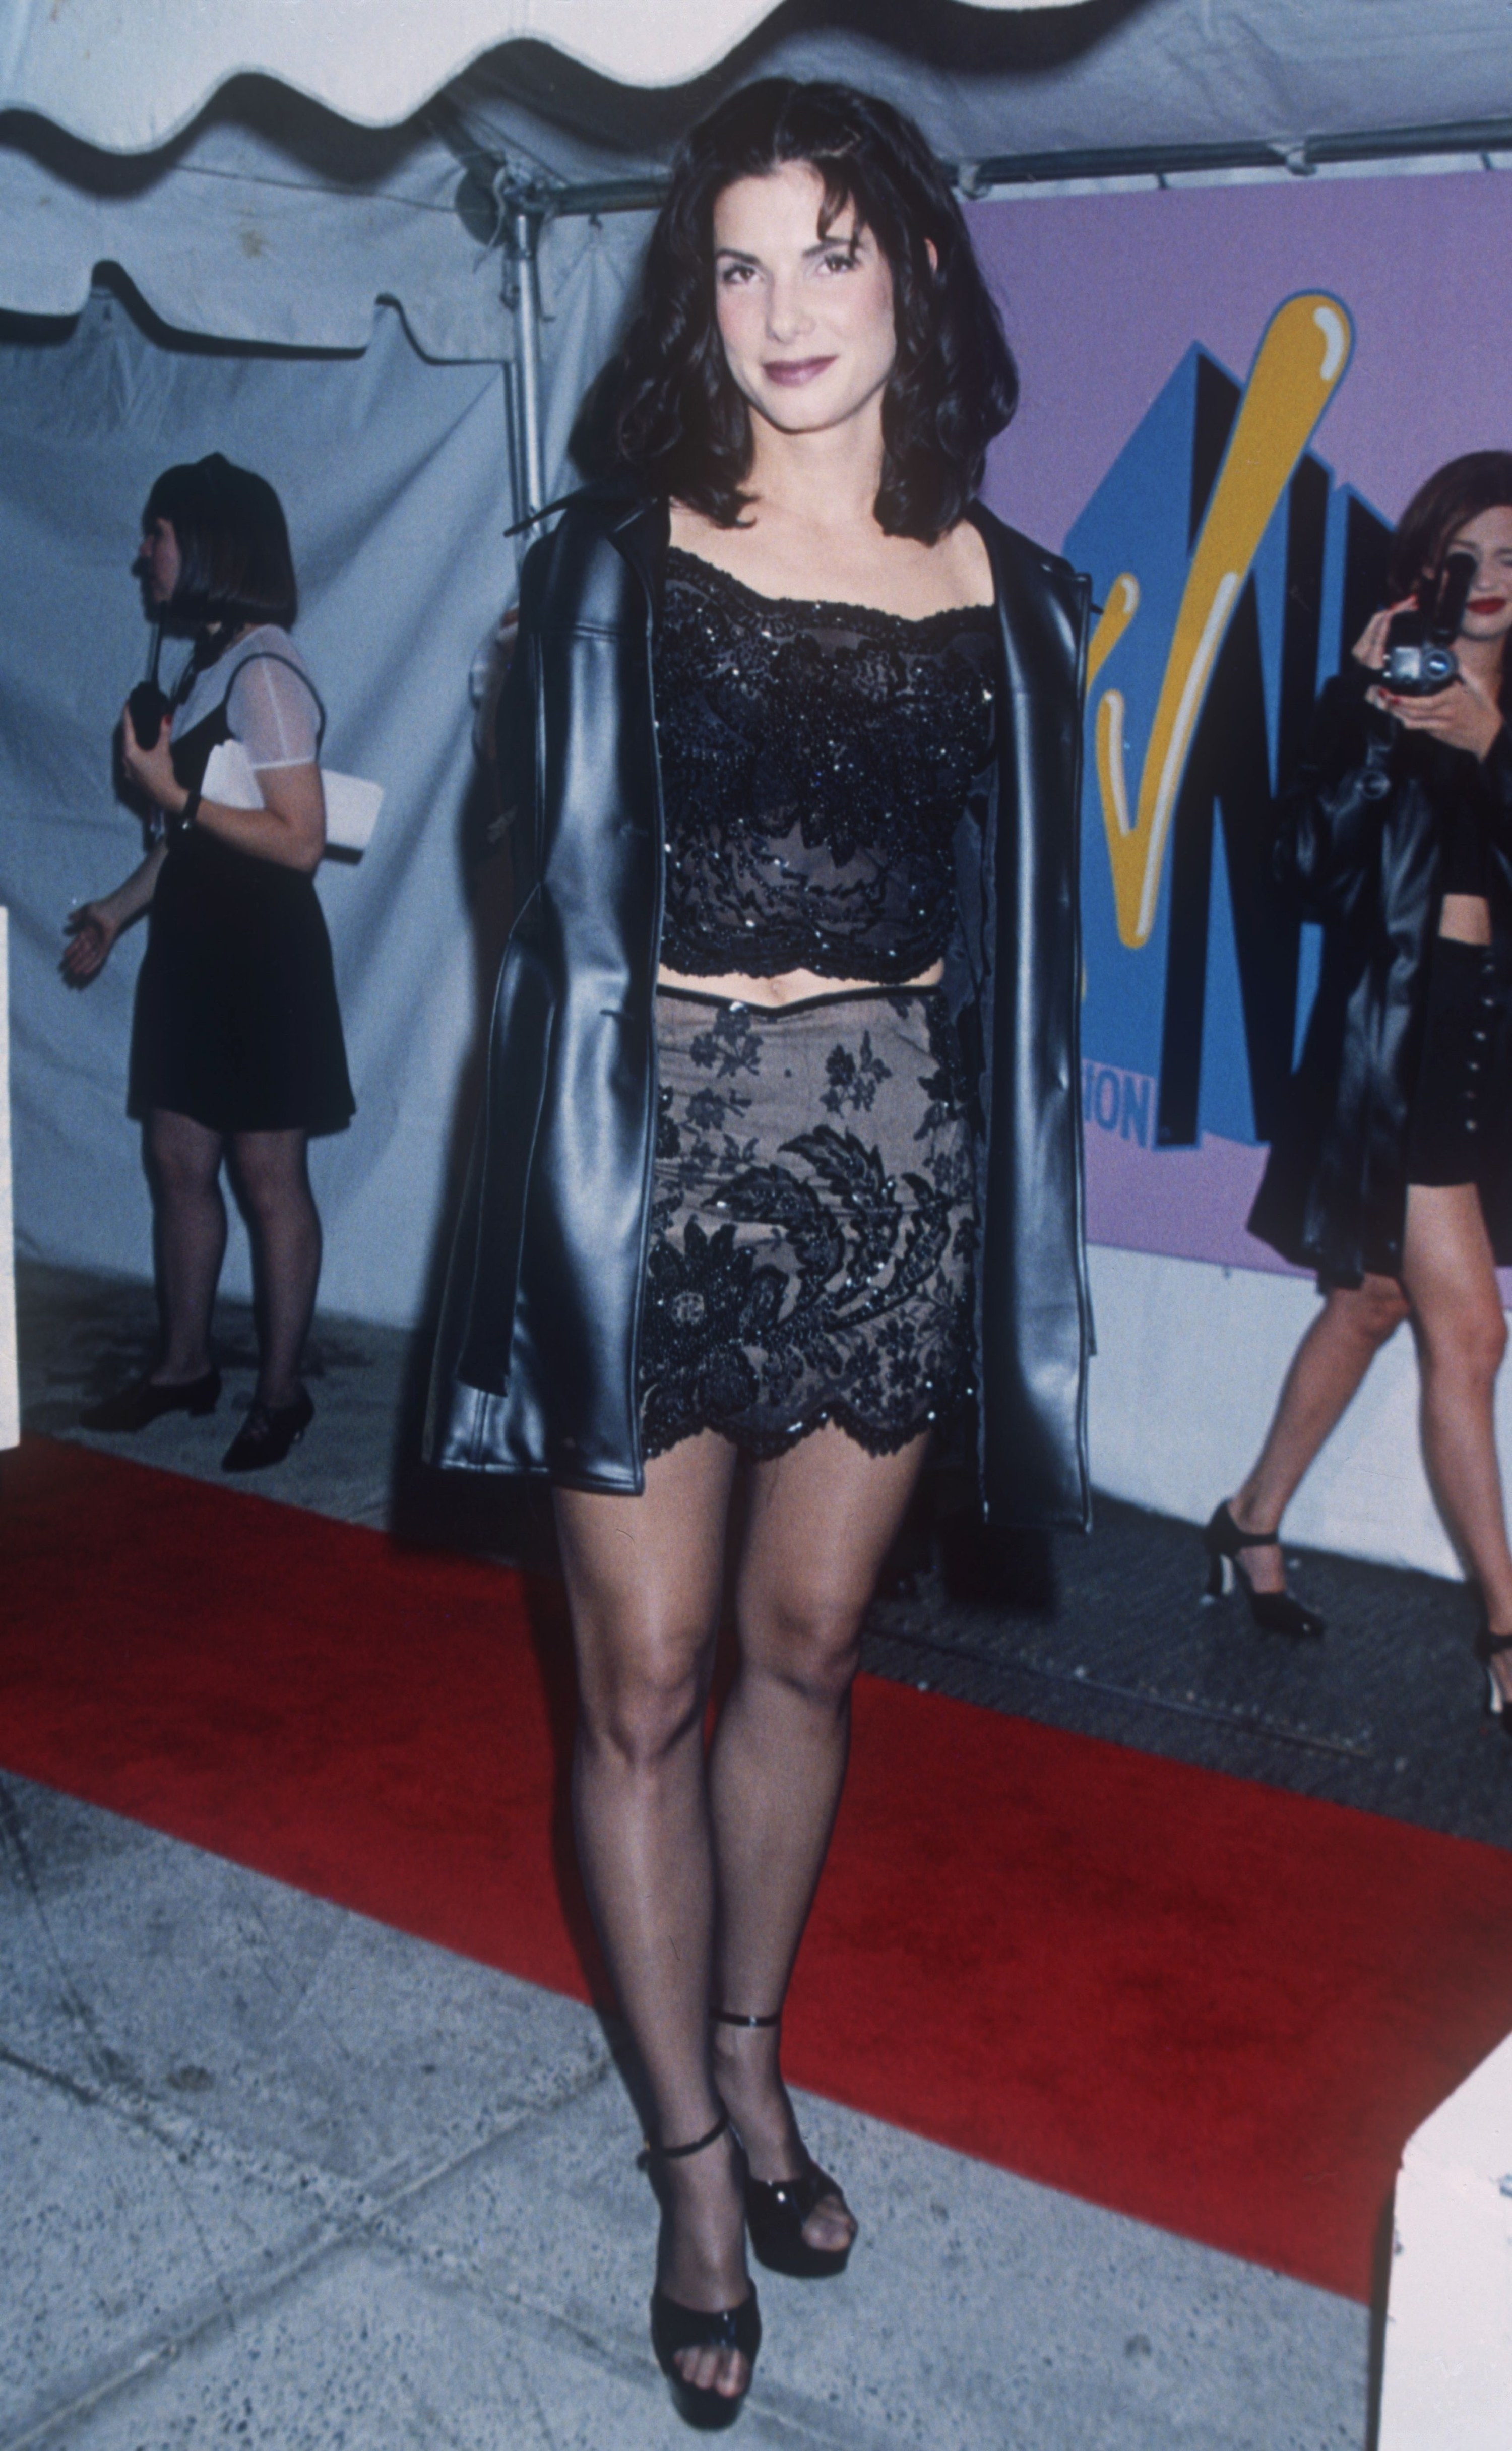 At the VMAs with black hose, lots of black lace, and sandals